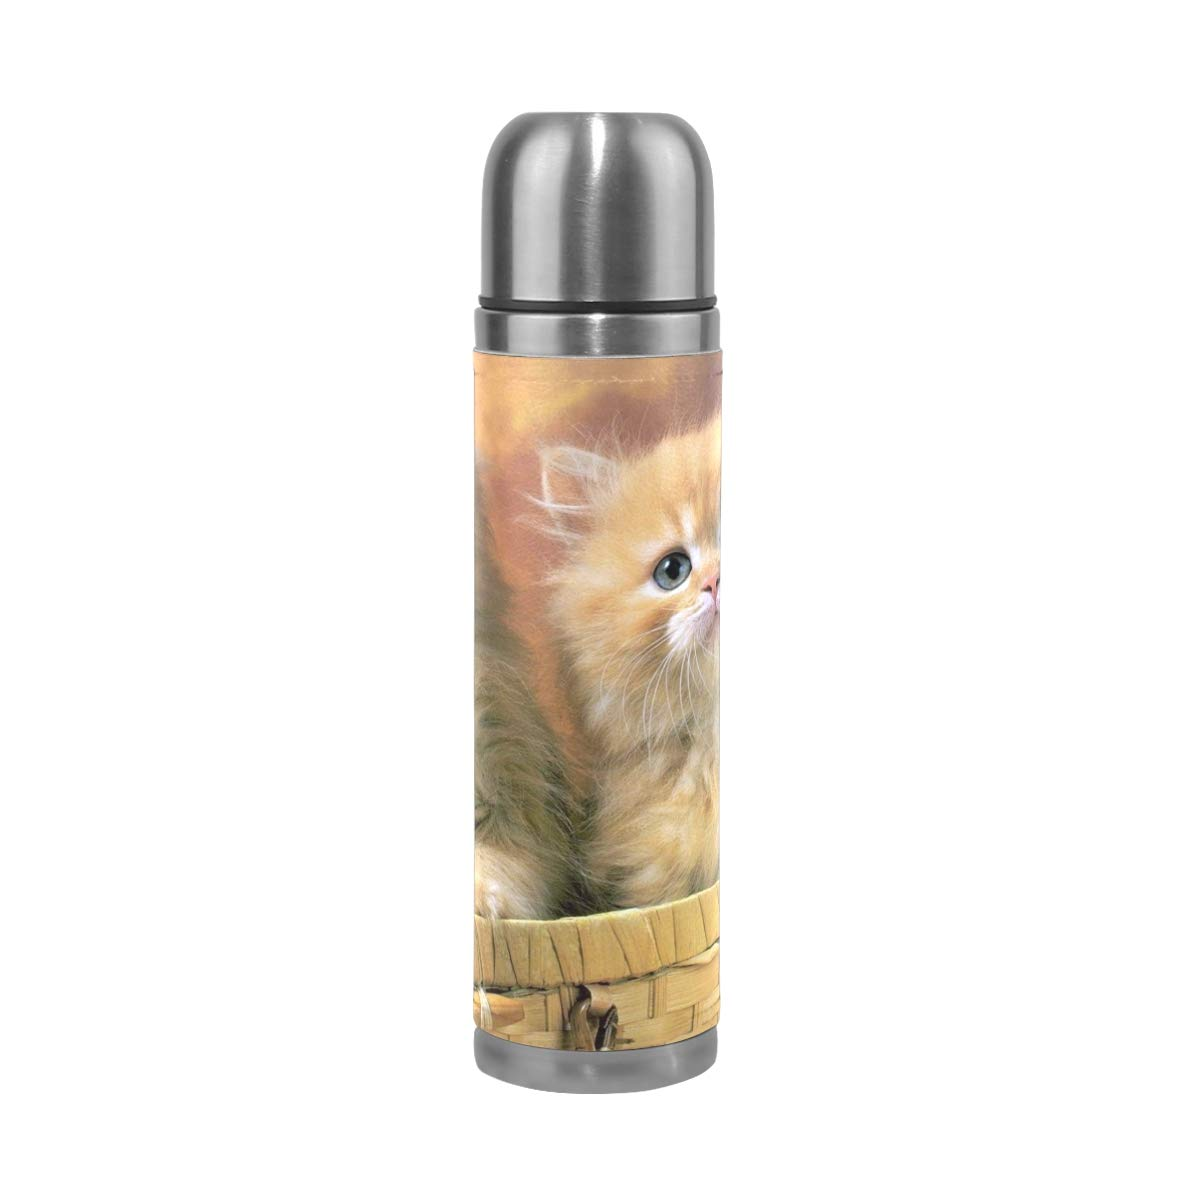 OuLian Thermos Cute Cat Animals Cycling Insulated Stainless Steel Water Bottle Leak Proof Thermos Leather Cover 17 Oz